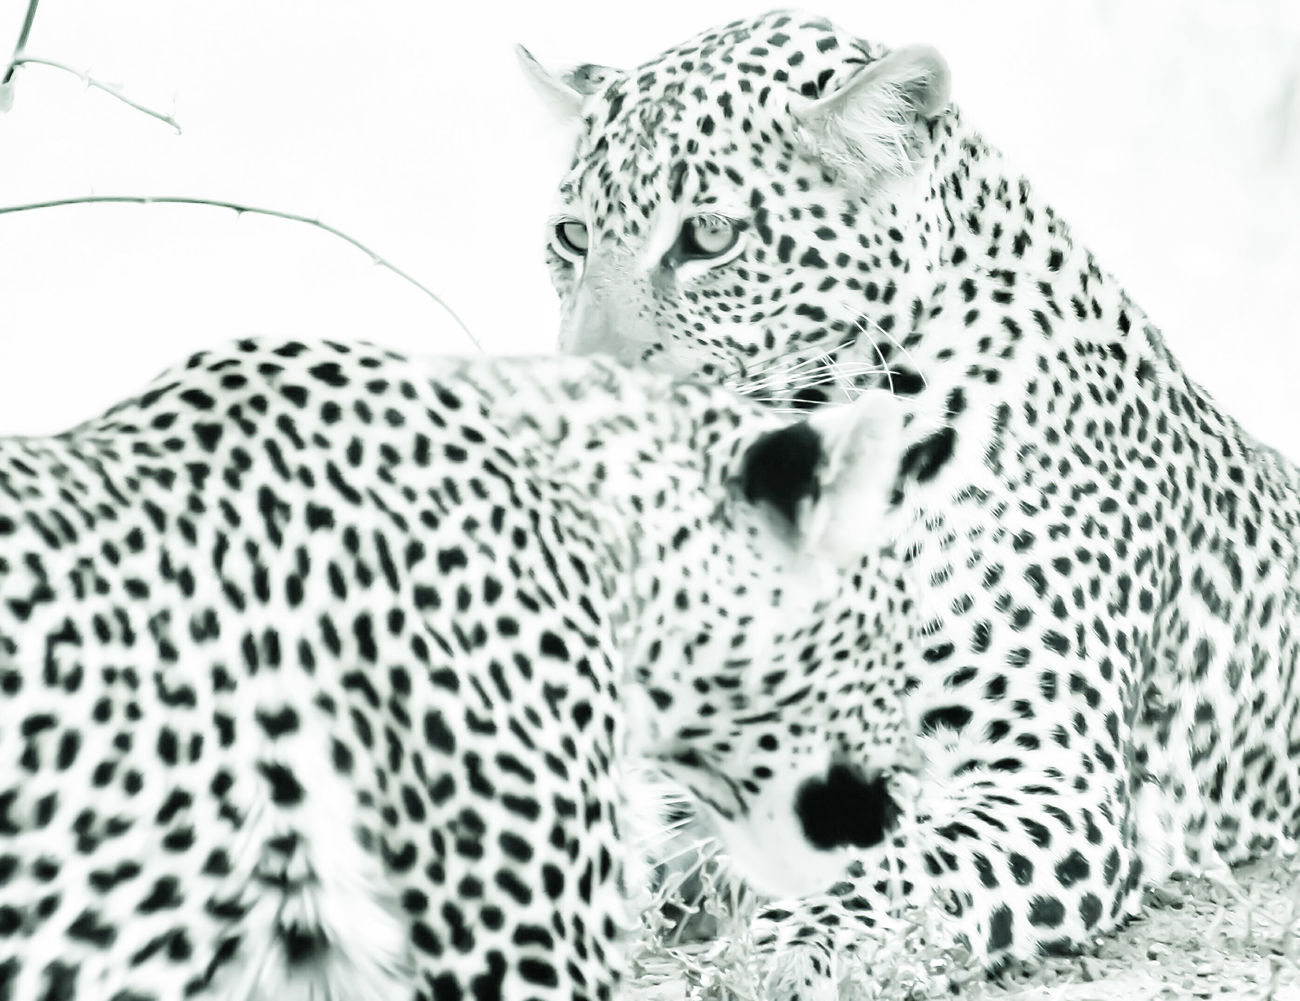 Spotted Leopard Animal Themes Feline Animal Markings White Background The Great Outdoors - 2016 EyeEm Awards Minimal Tranquility Nature_collection Beauty In Nature Safari Africa Eye4photography  Blackandwhite Photography Black&white Darkness And Light Black And White EyeEm Best Shots - Black + White Serengeti Serengeti National Park EyeEm Best Edits Animals In The Wild Animal Wildlife Spotted